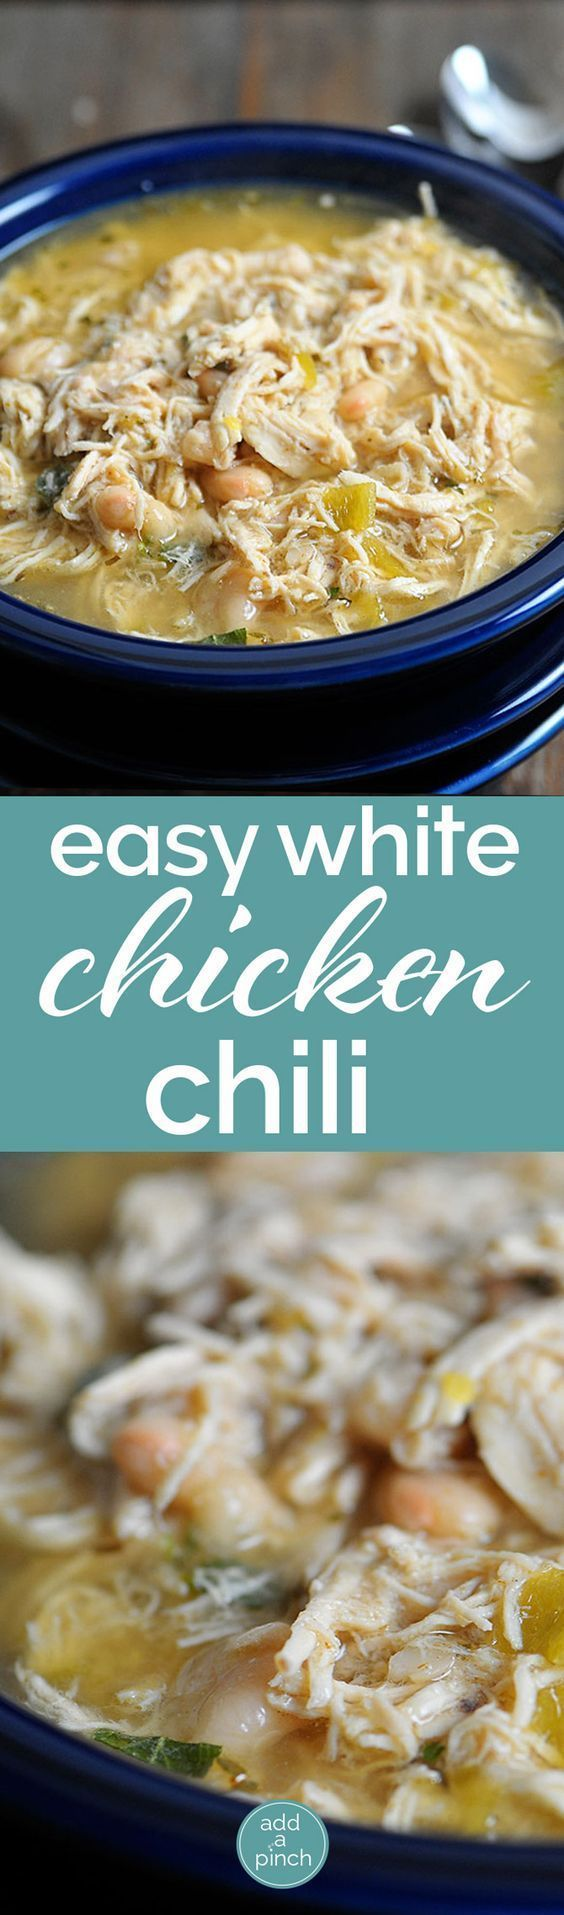 White Chicken Chili makes a delicious meal full of spicy chili flavor, white beans and chicken. You'll love this easy White Chicken Chili recipe. // addapinch.com (Cream Cheese Chicken Chili)